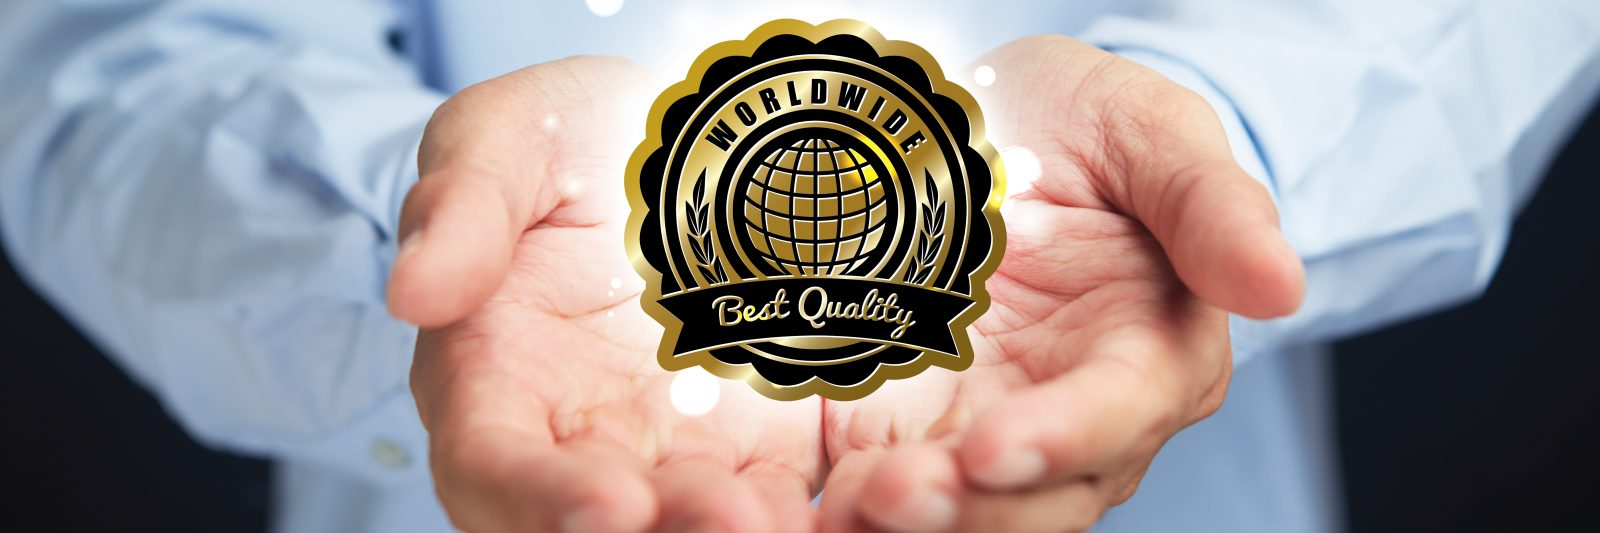 worldwide best quality seal